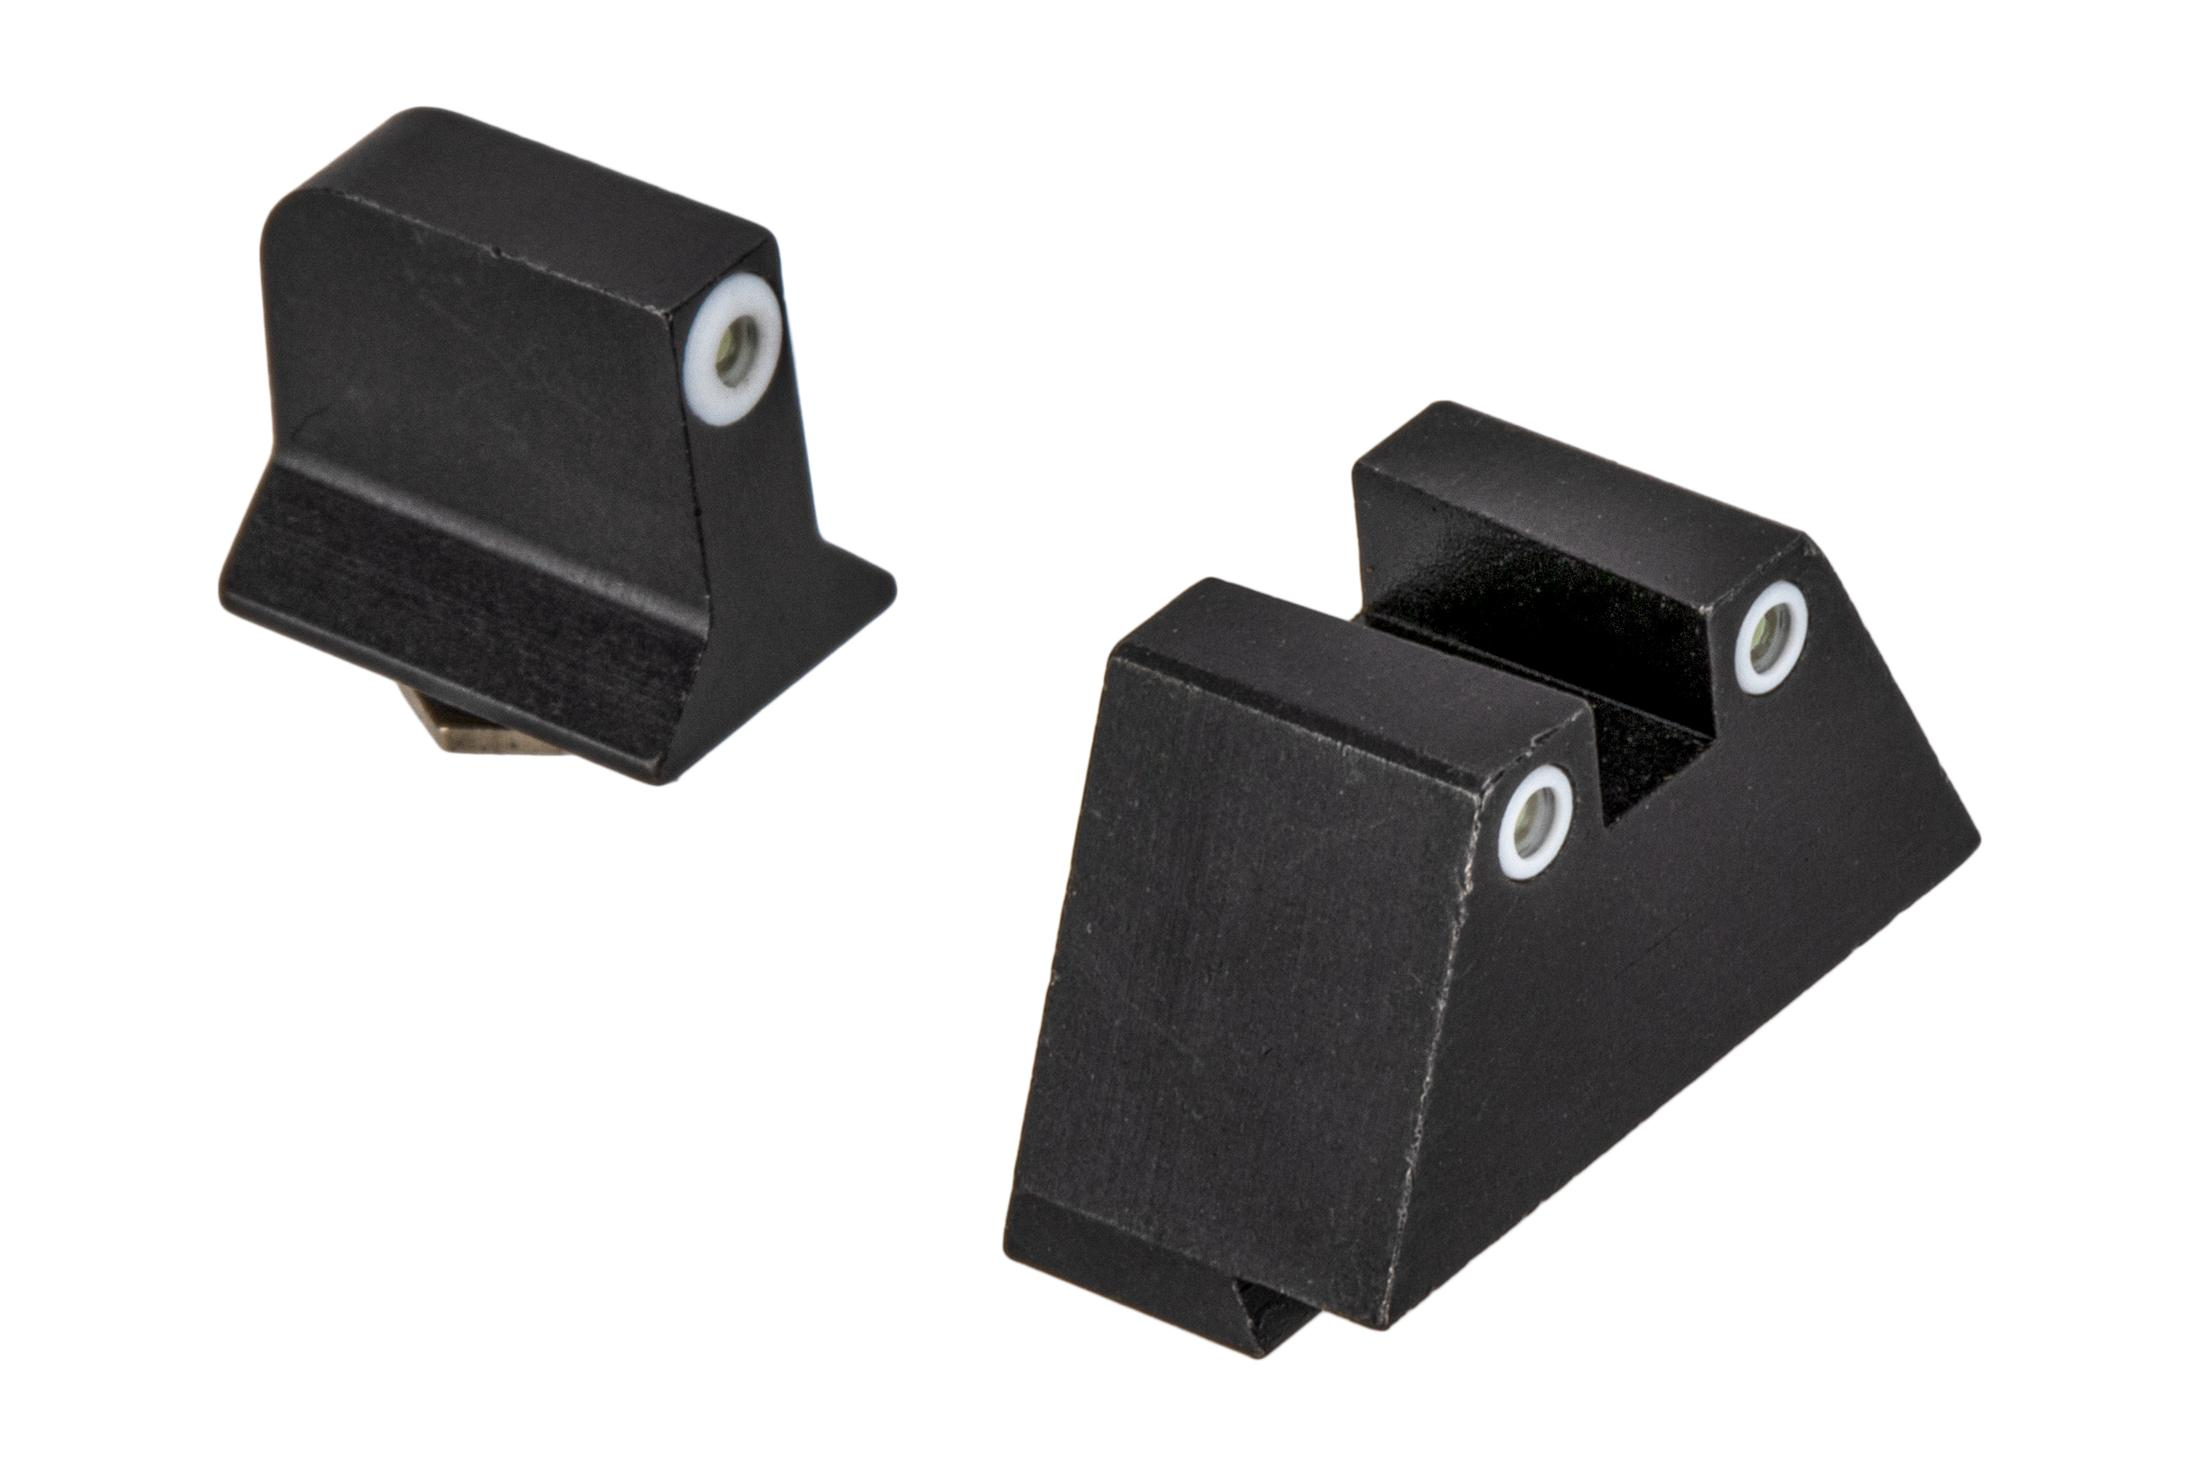 Night Fision Suppressor Height Perfect Dot Night Sight Set with square notch, White front and White rear ring for standard Glock handguns.